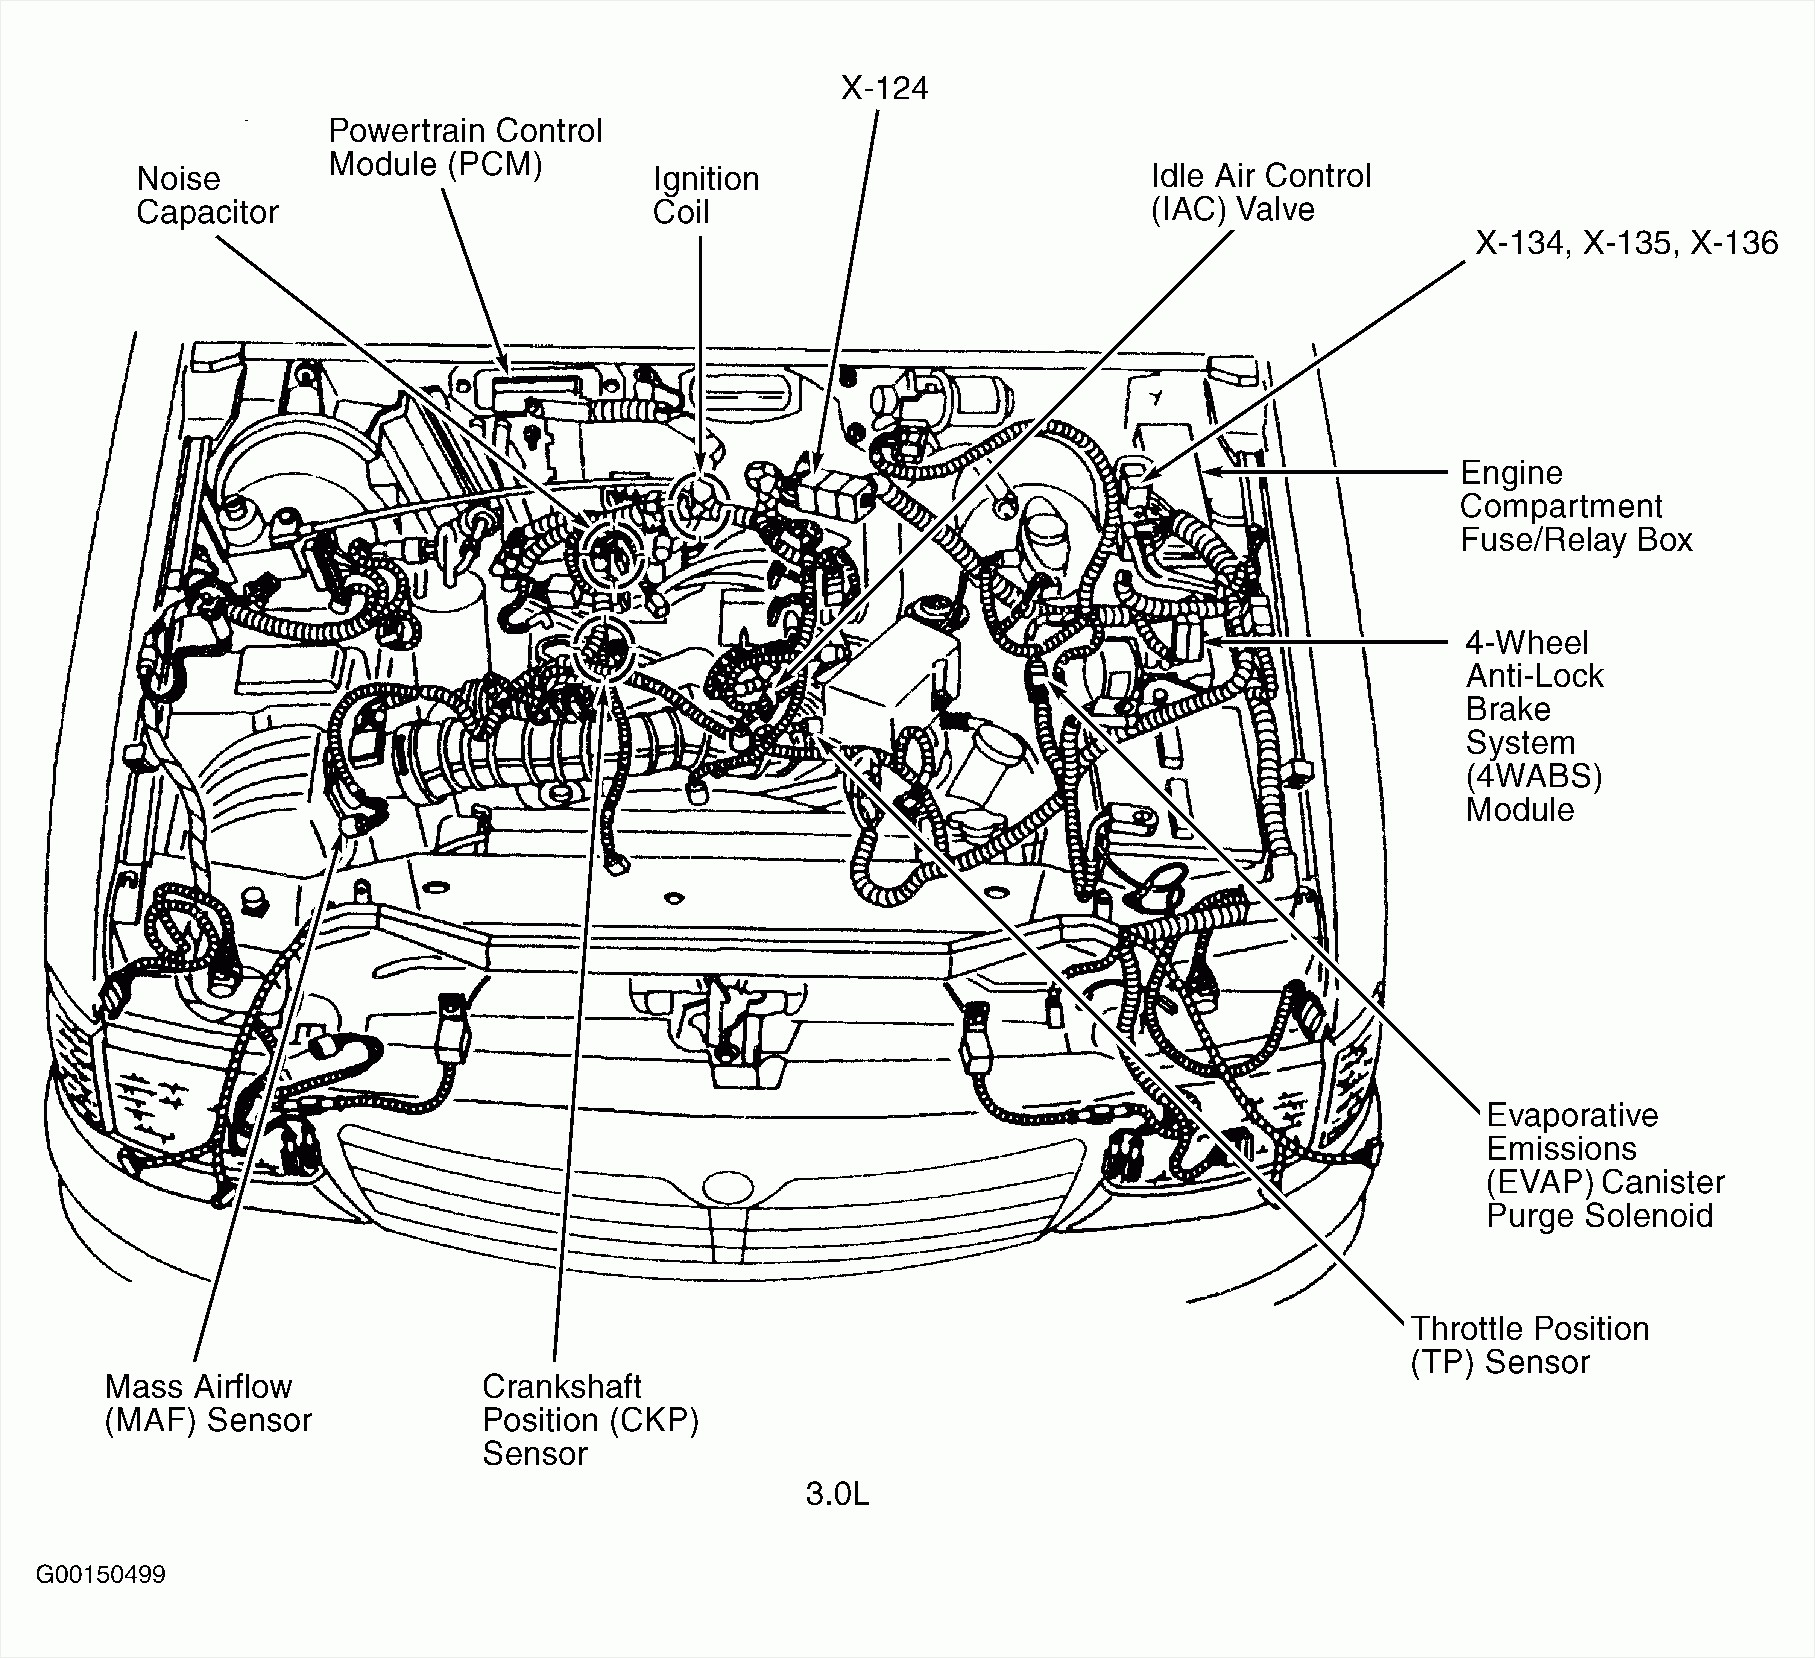 1997 mazda mpv engine diagram complete wiring diagram vetreriaduemme it